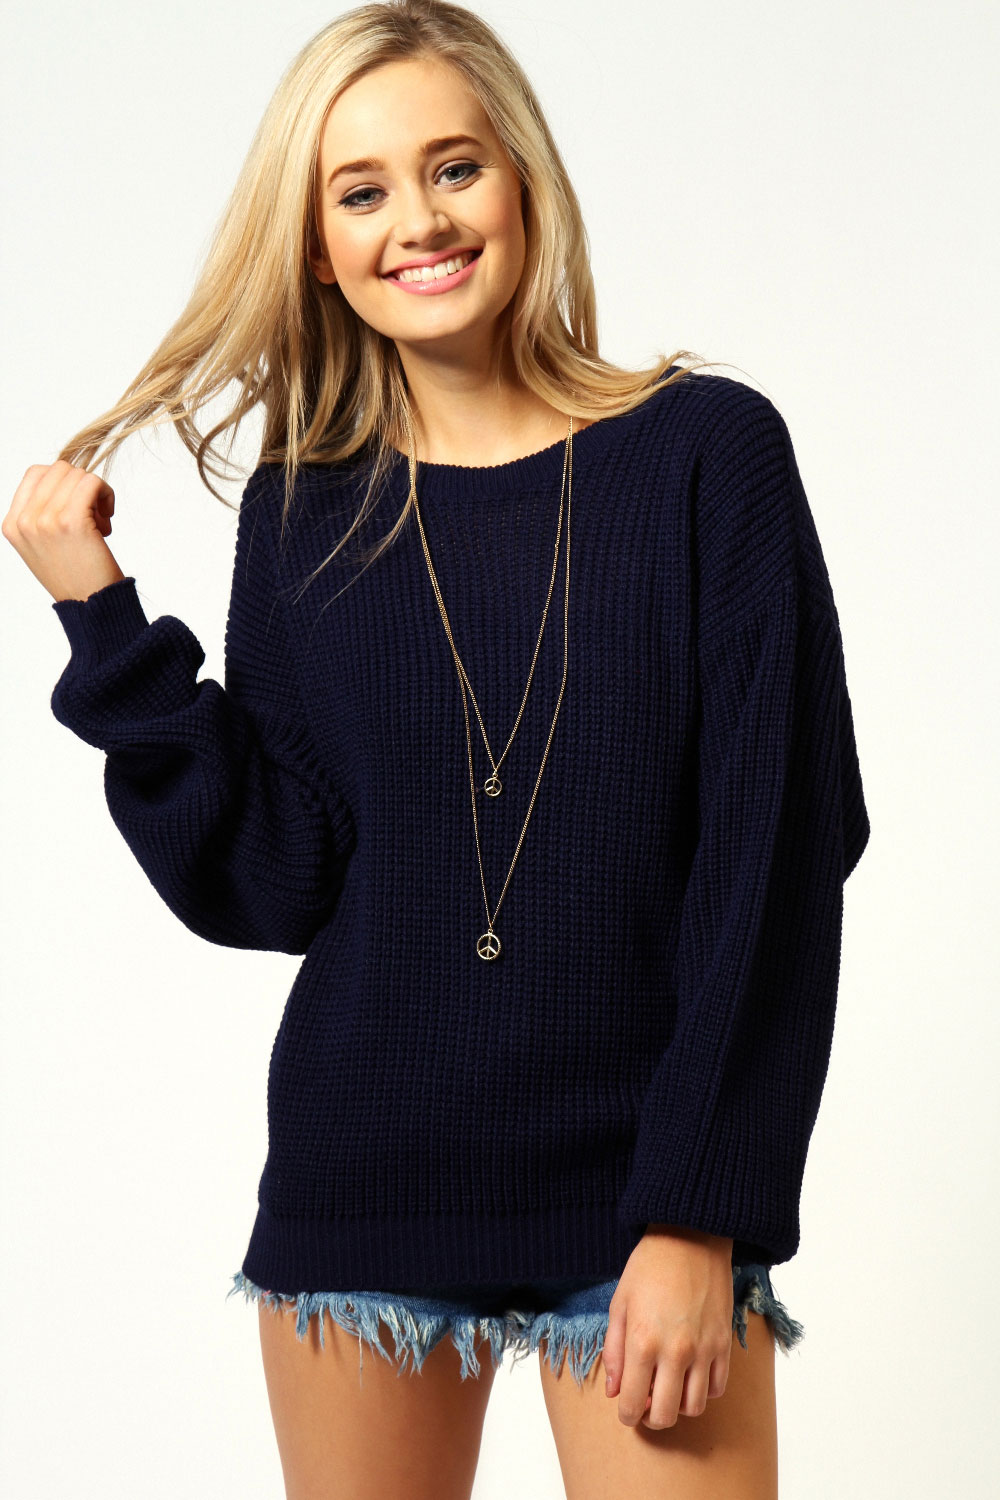 You searched for: womens jumper! Etsy is the home to thousands of handmade, vintage, and one-of-a-kind products and gifts related to your search. No matter what you're looking for or where you are in the world, our global marketplace of sellers can help you find unique and affordable options. Let's get started!